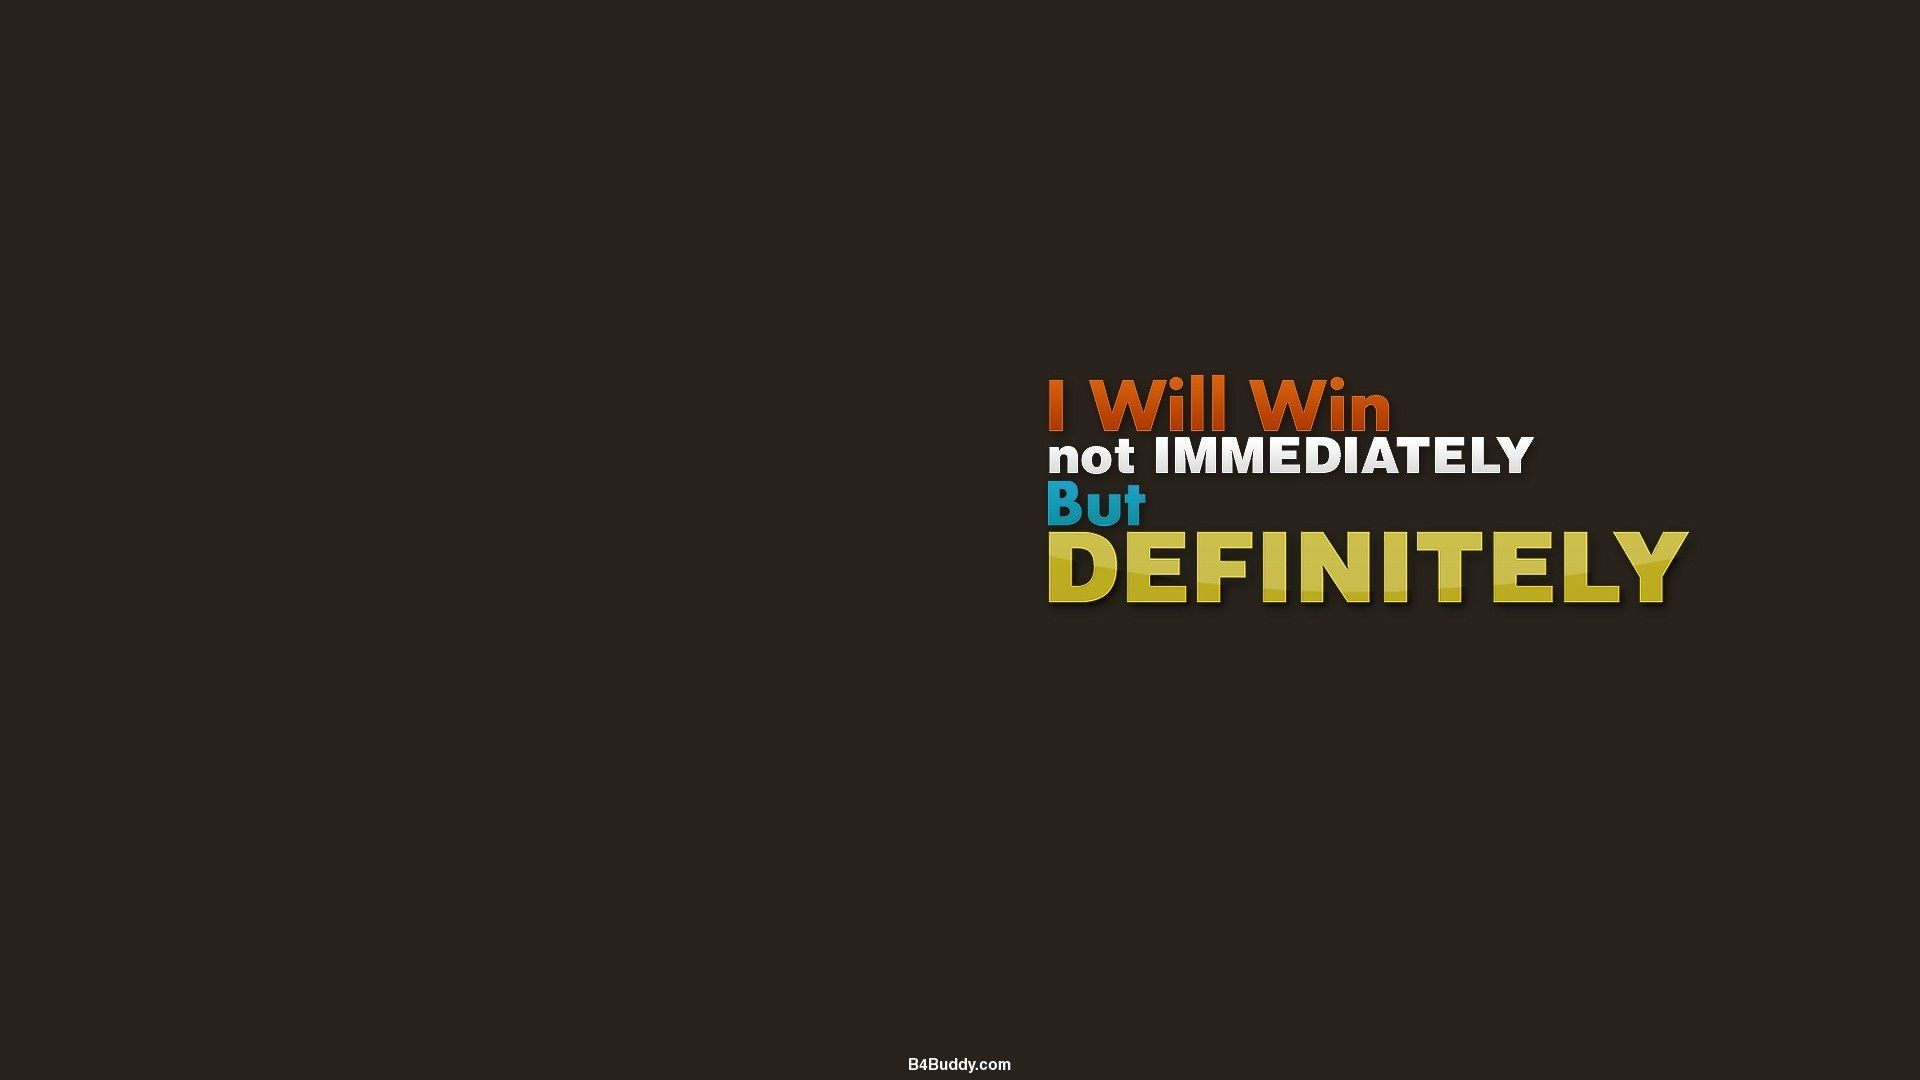 Motivational Quote For Work Motivational Quotes For Work  Wallpaper Images Wallpapers